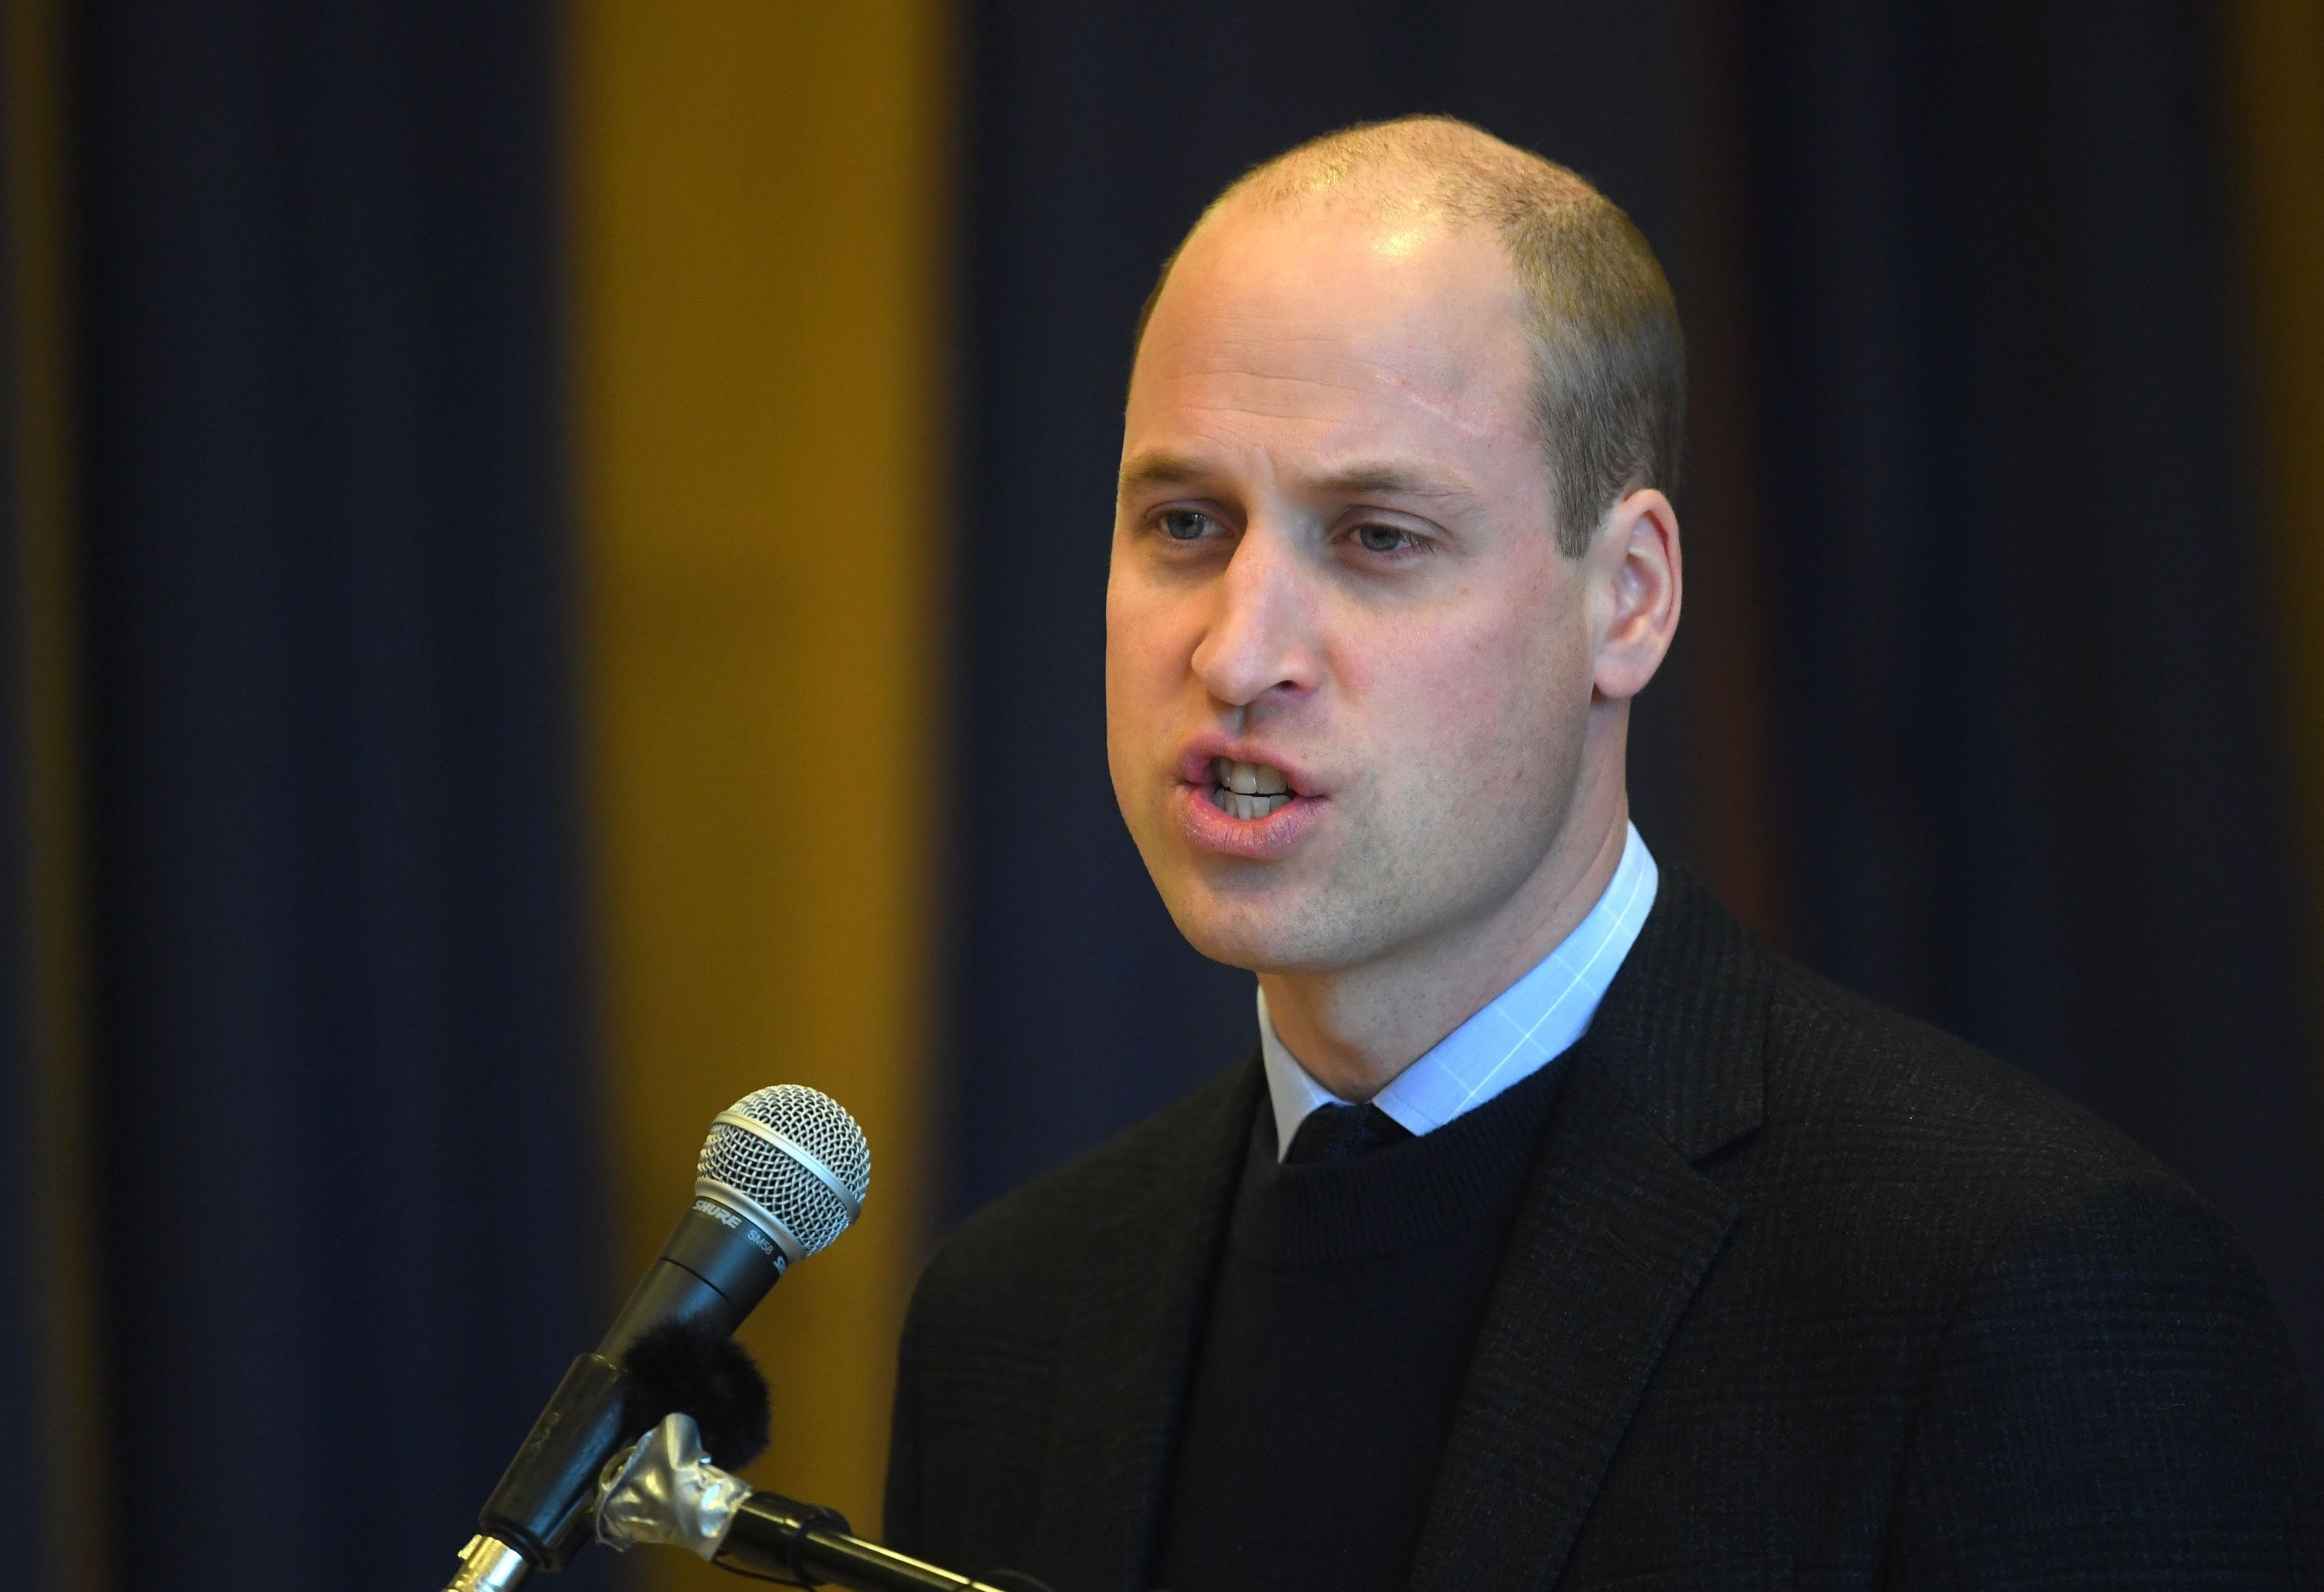 Prince William gave school students the best surprise